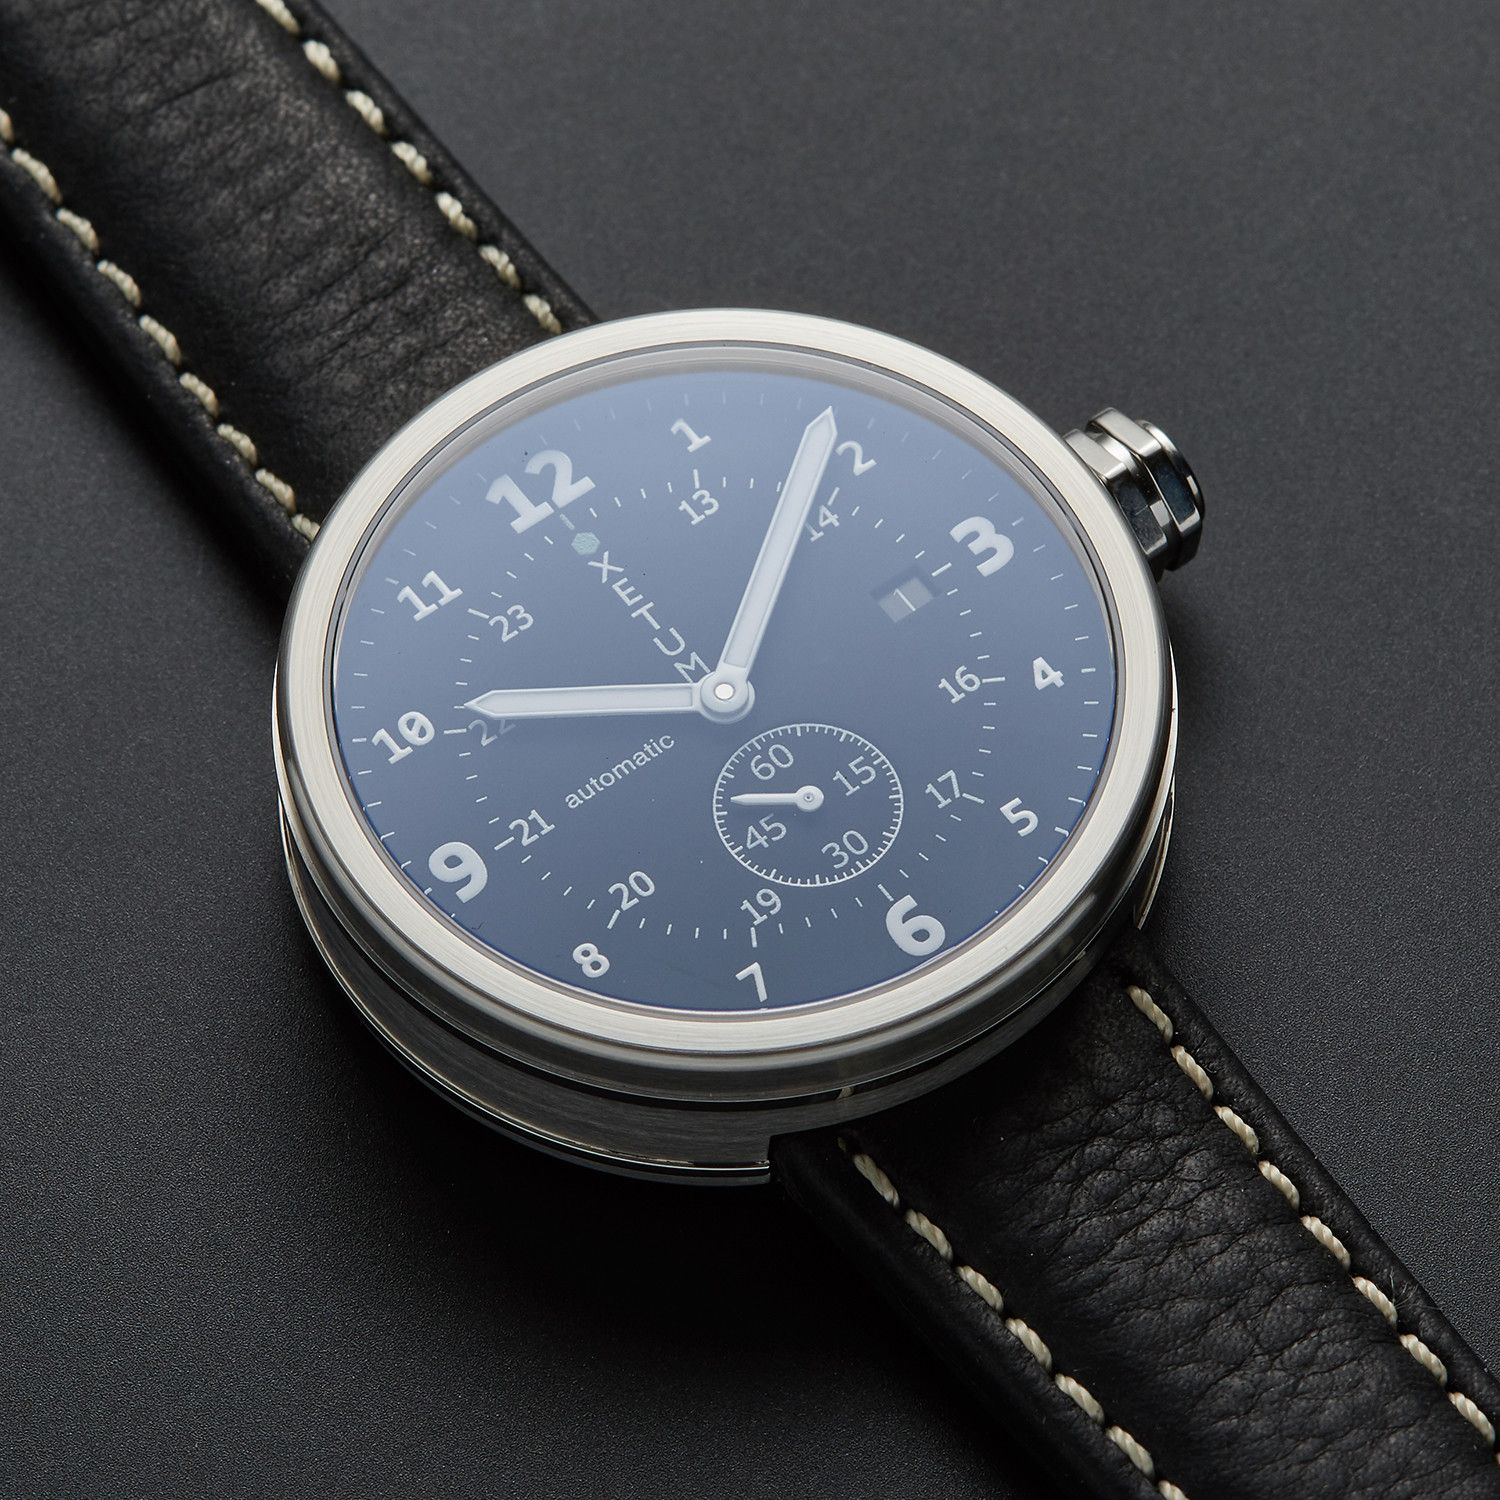 Xetum Tyndall Automatic A2 Fedtn Blends Instrument Modern Watch Modern Watches Swiss Automatic Watches Vintage Watches